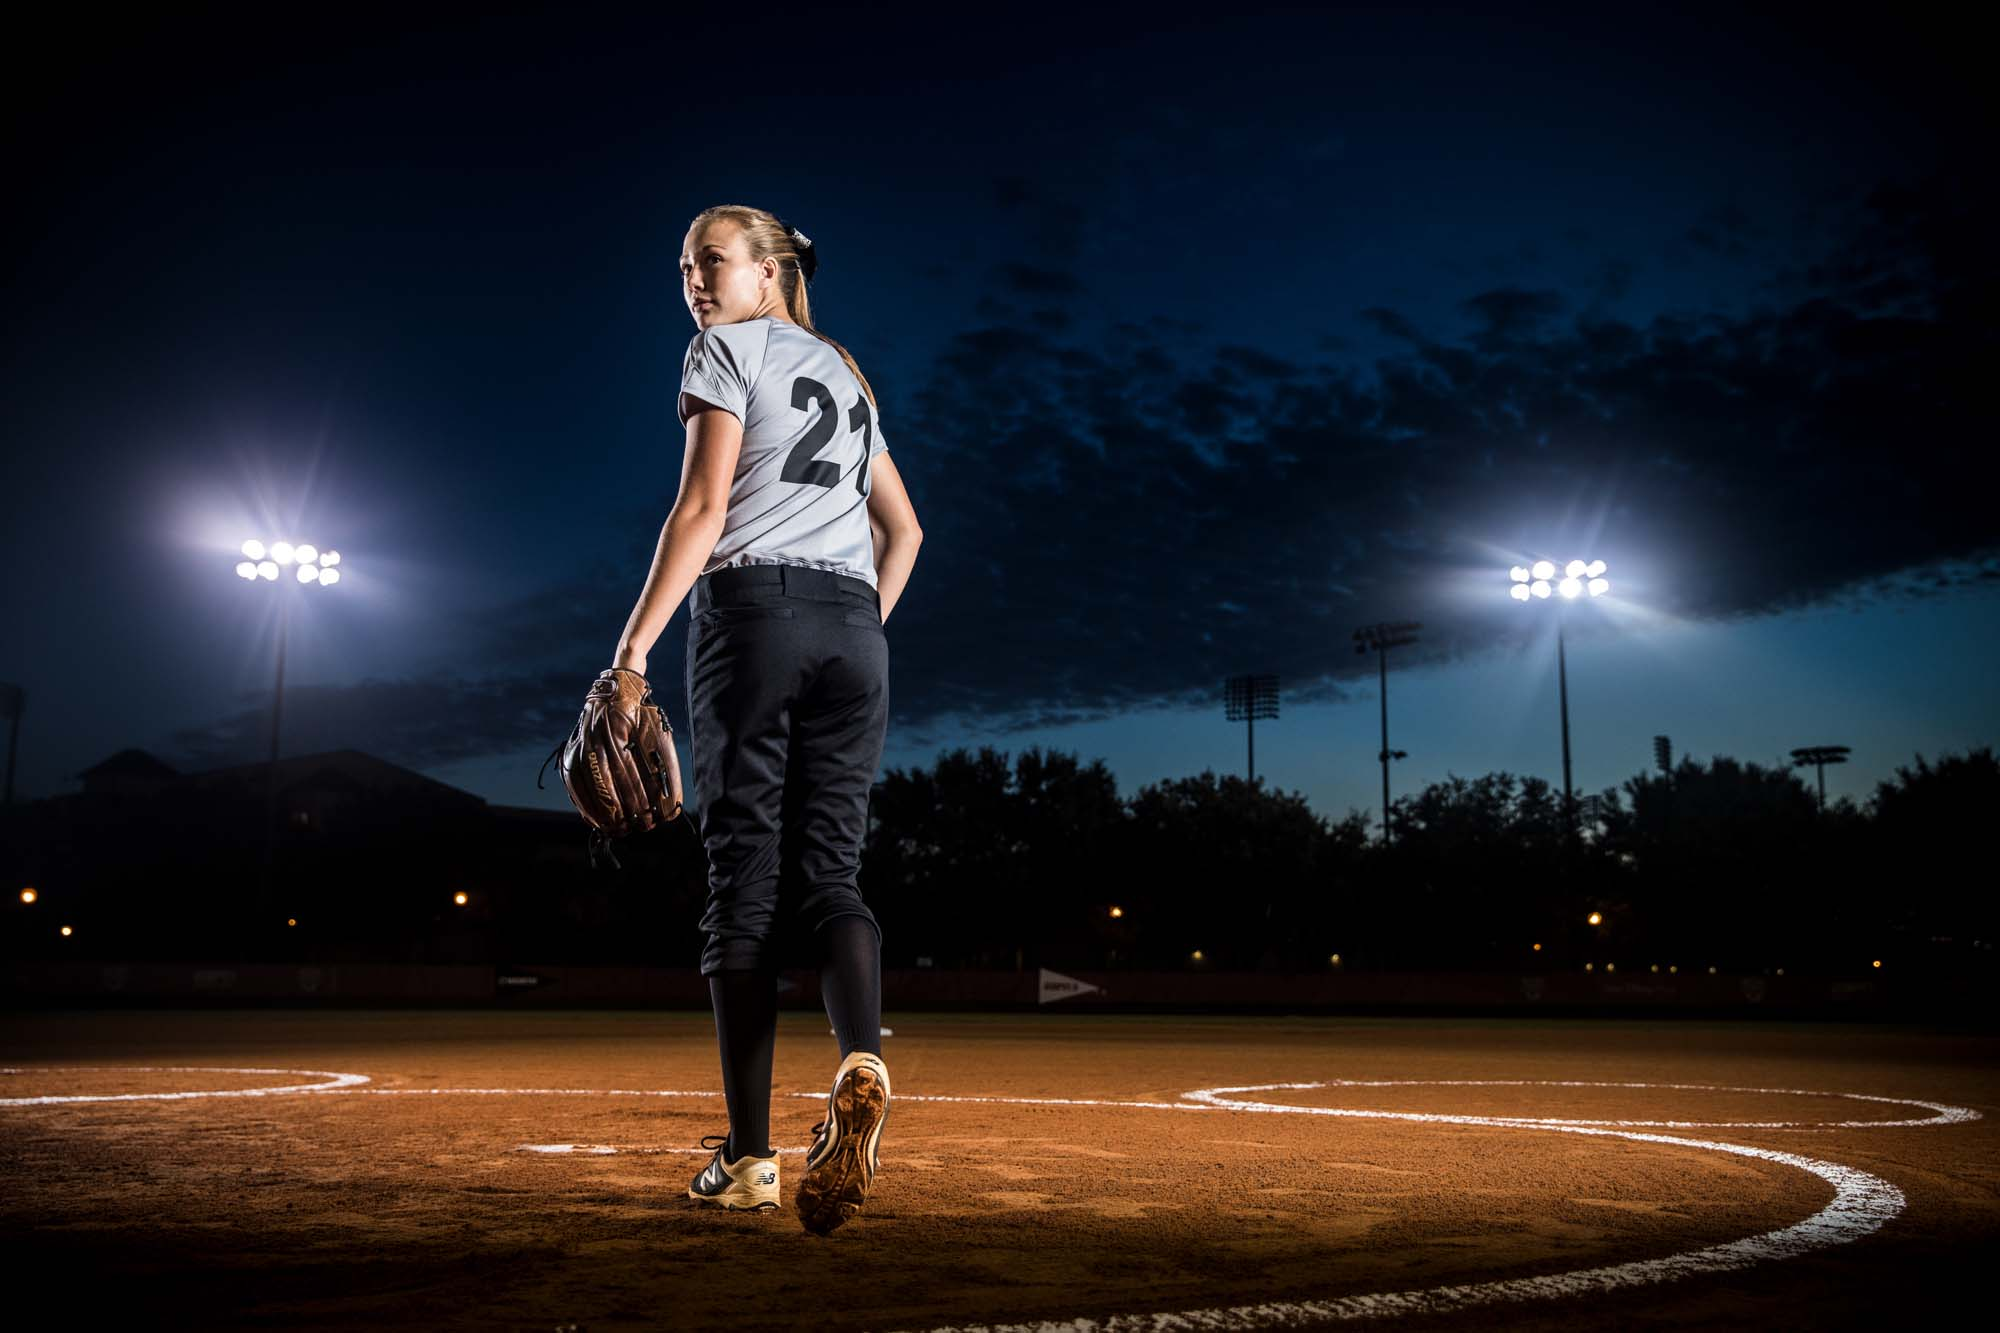 ESPN_Softball_Pitcher_Port_0018